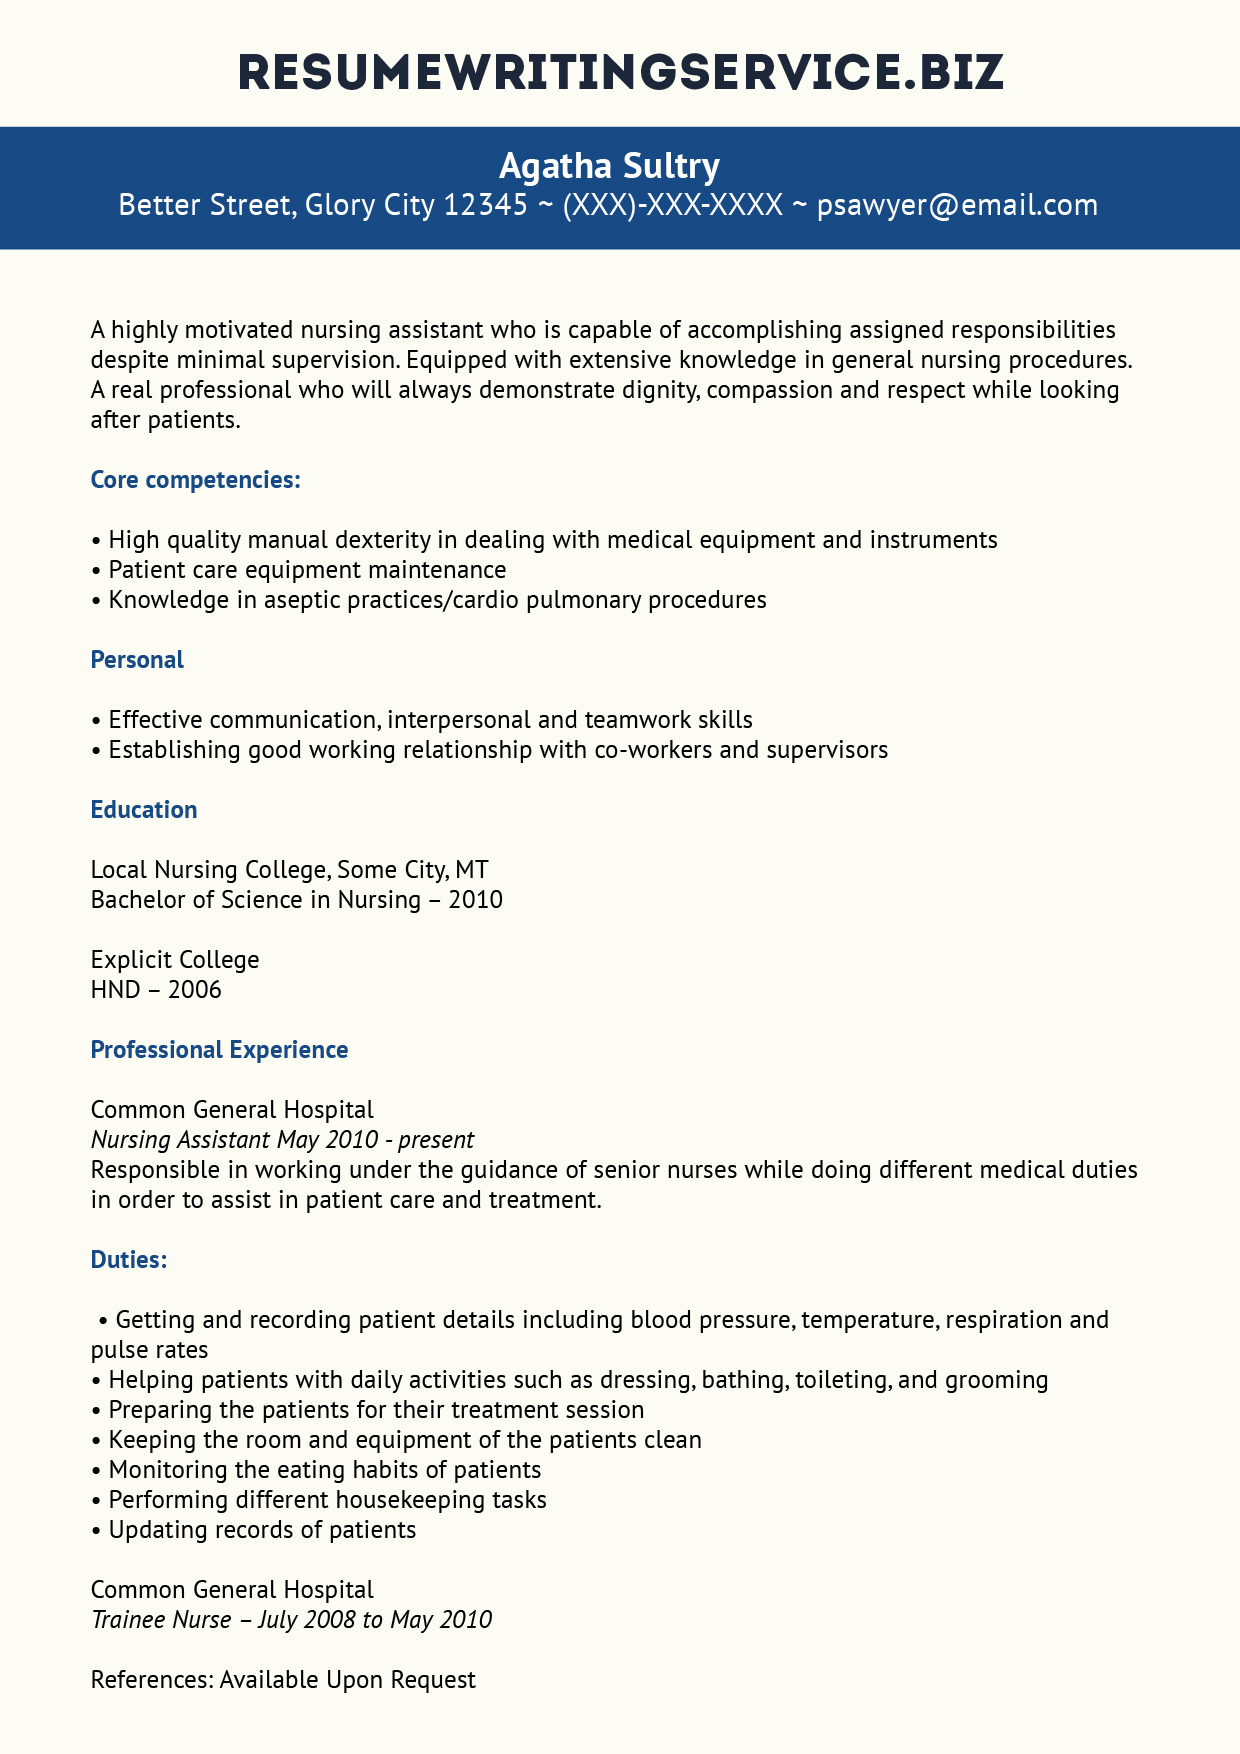 Nursing Resumes That Stand Out Professional Nursing Assistant Resume Example Resume